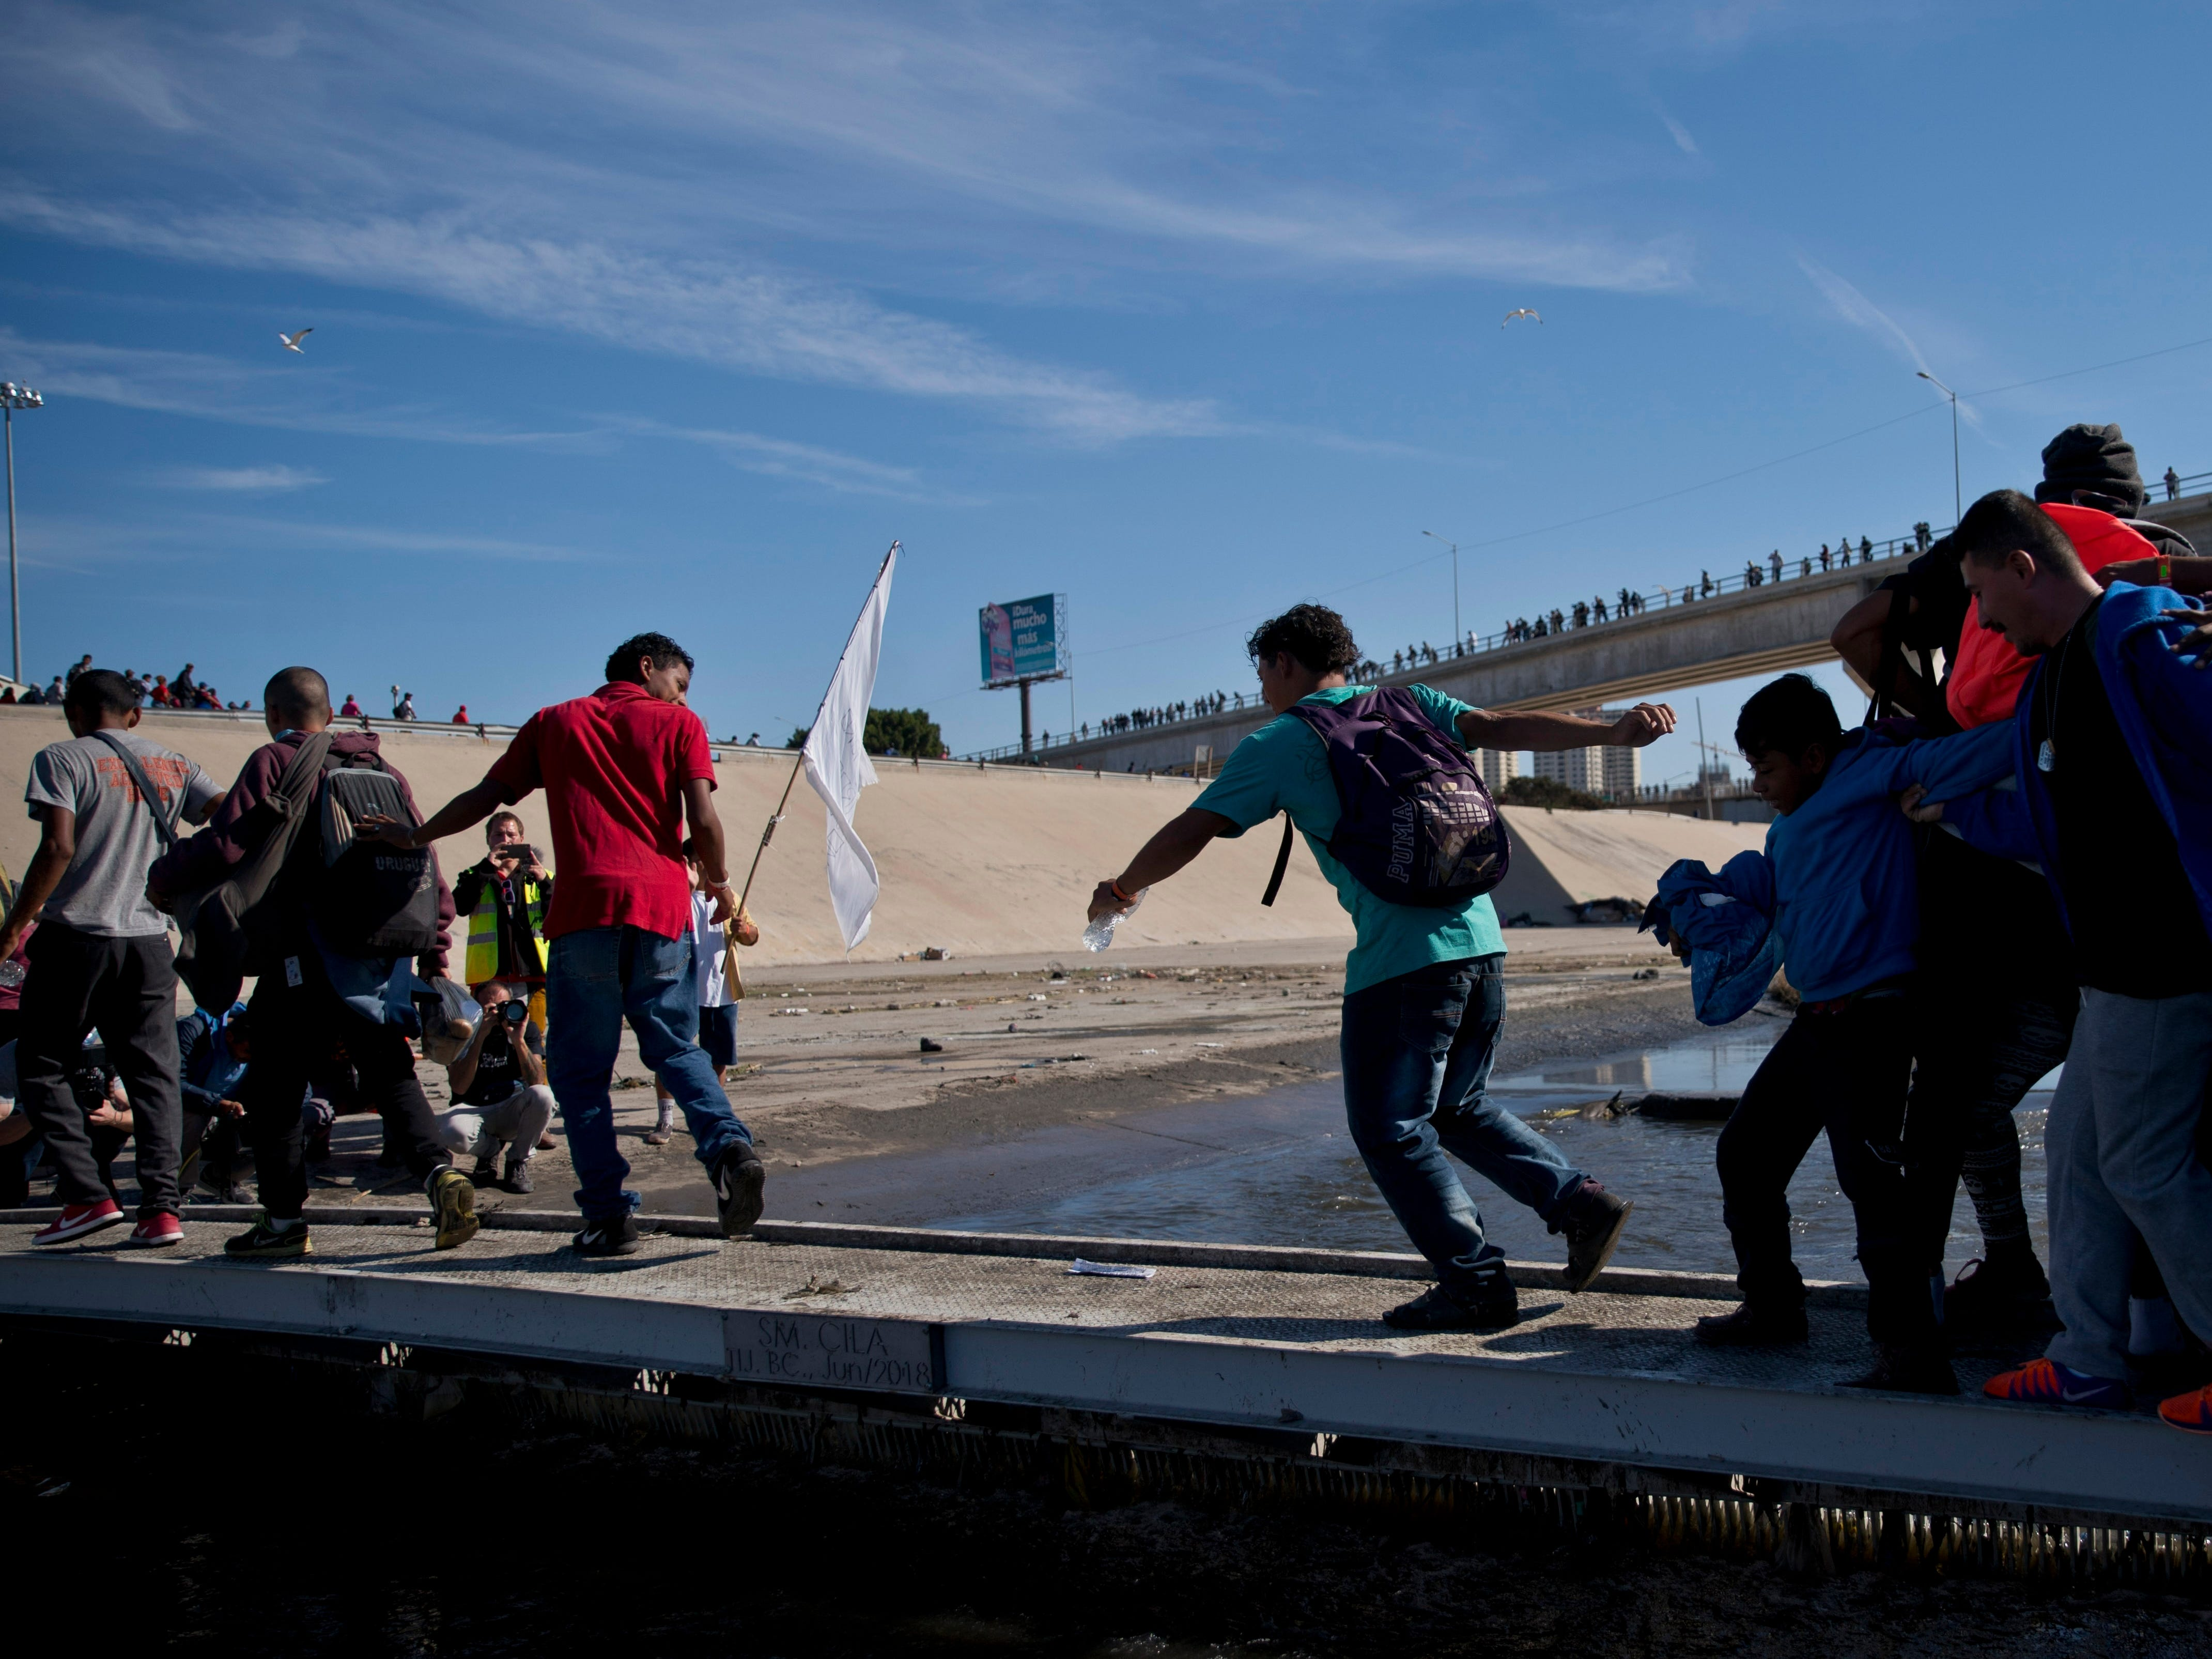 Migrants cross the river at the Mexico-U.S. border after getting past a line of Mexican police at the Chaparral crossing in Tijuana, Mexico, Nov. 25, 2018, as they try to reach the U.S.